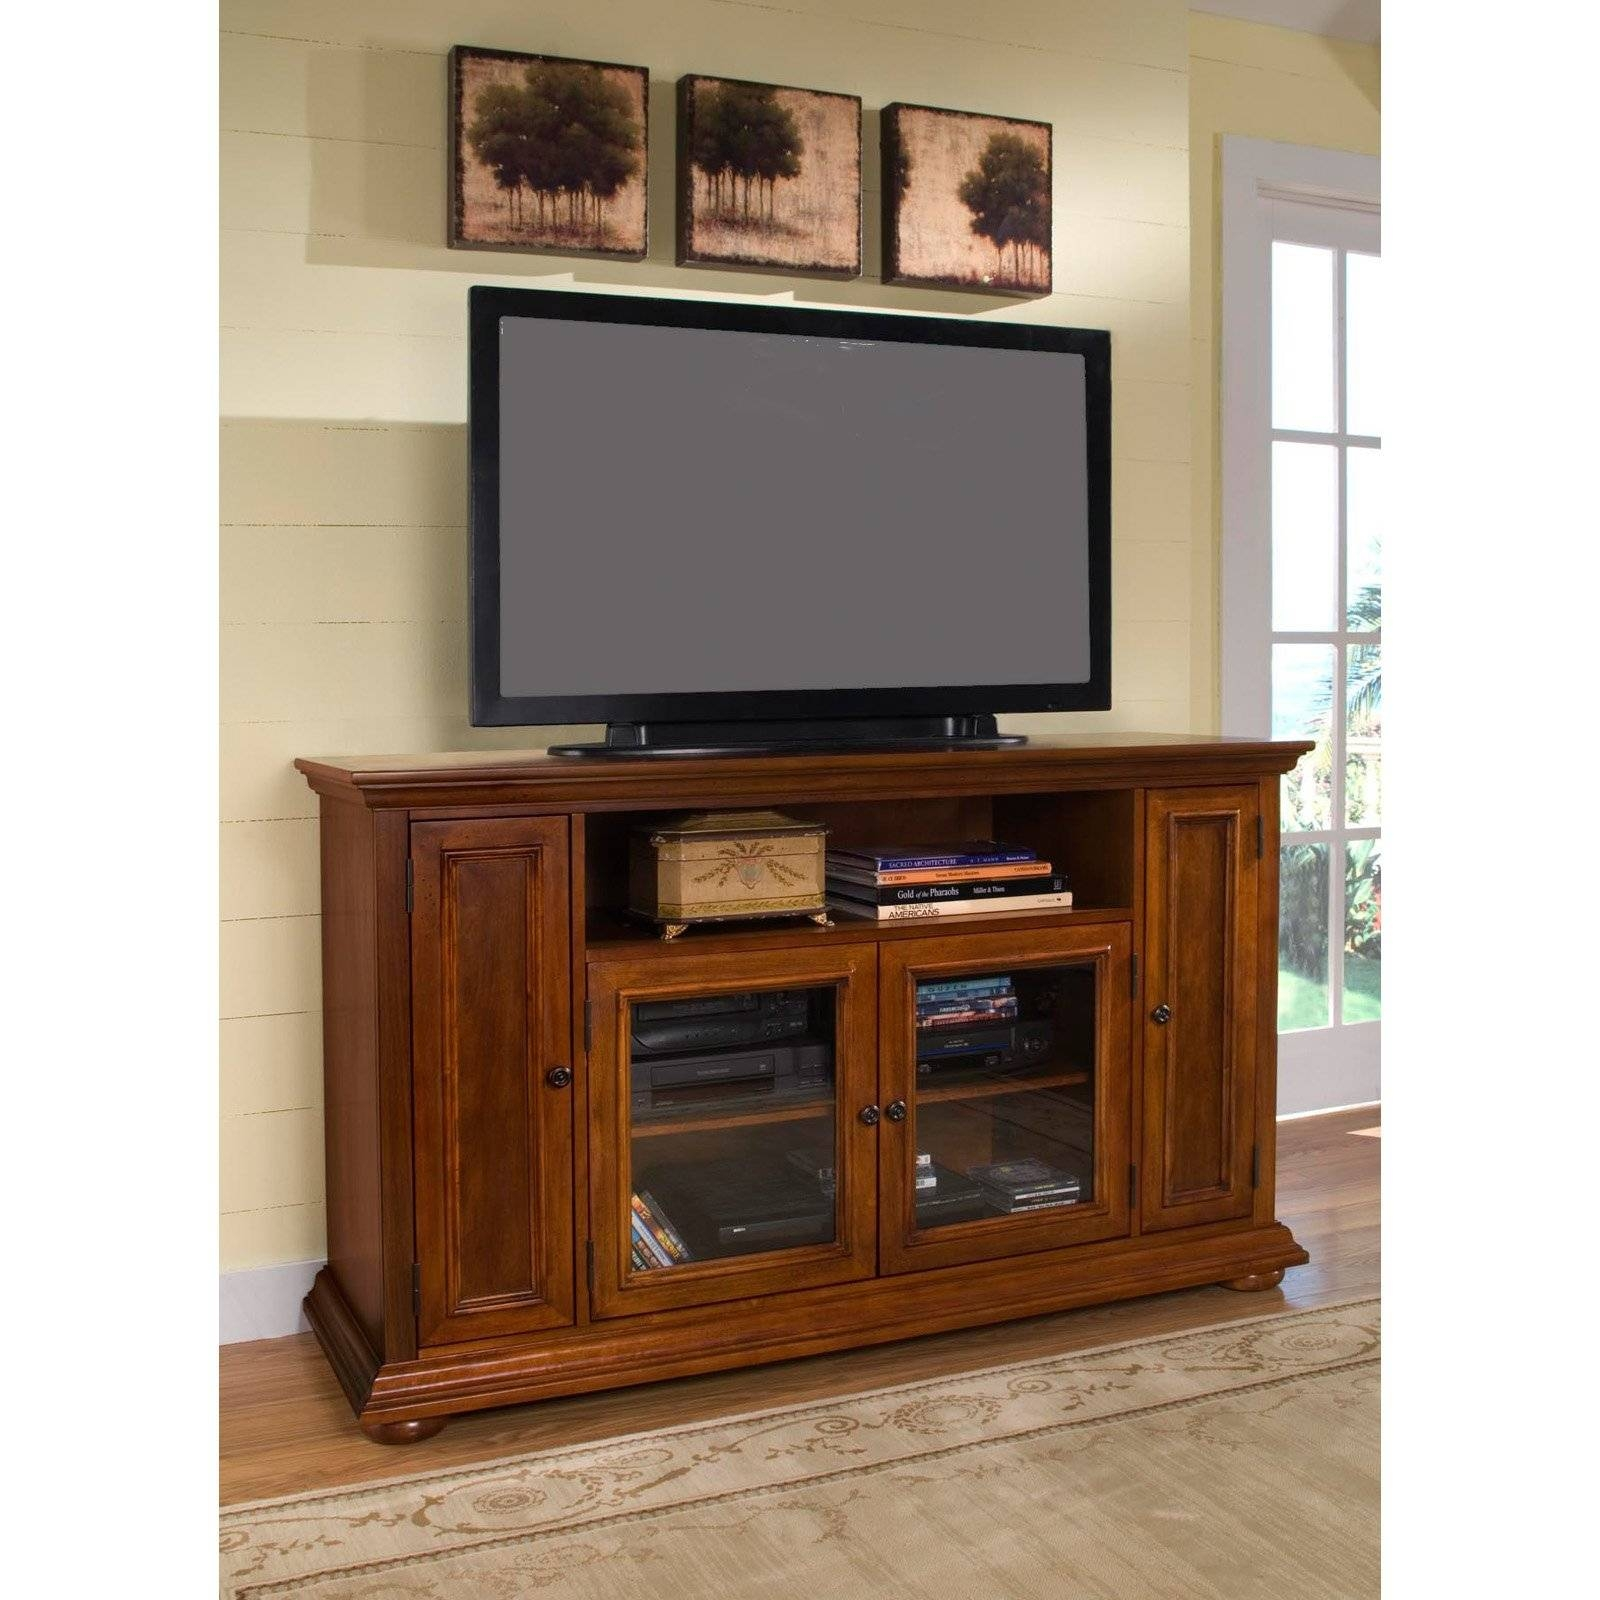 Oak Corner Tv Cabinets For Flat Screens | Memsaheb inside Corner Oak Tv Stands for Flat Screen (Image 2 of 15)